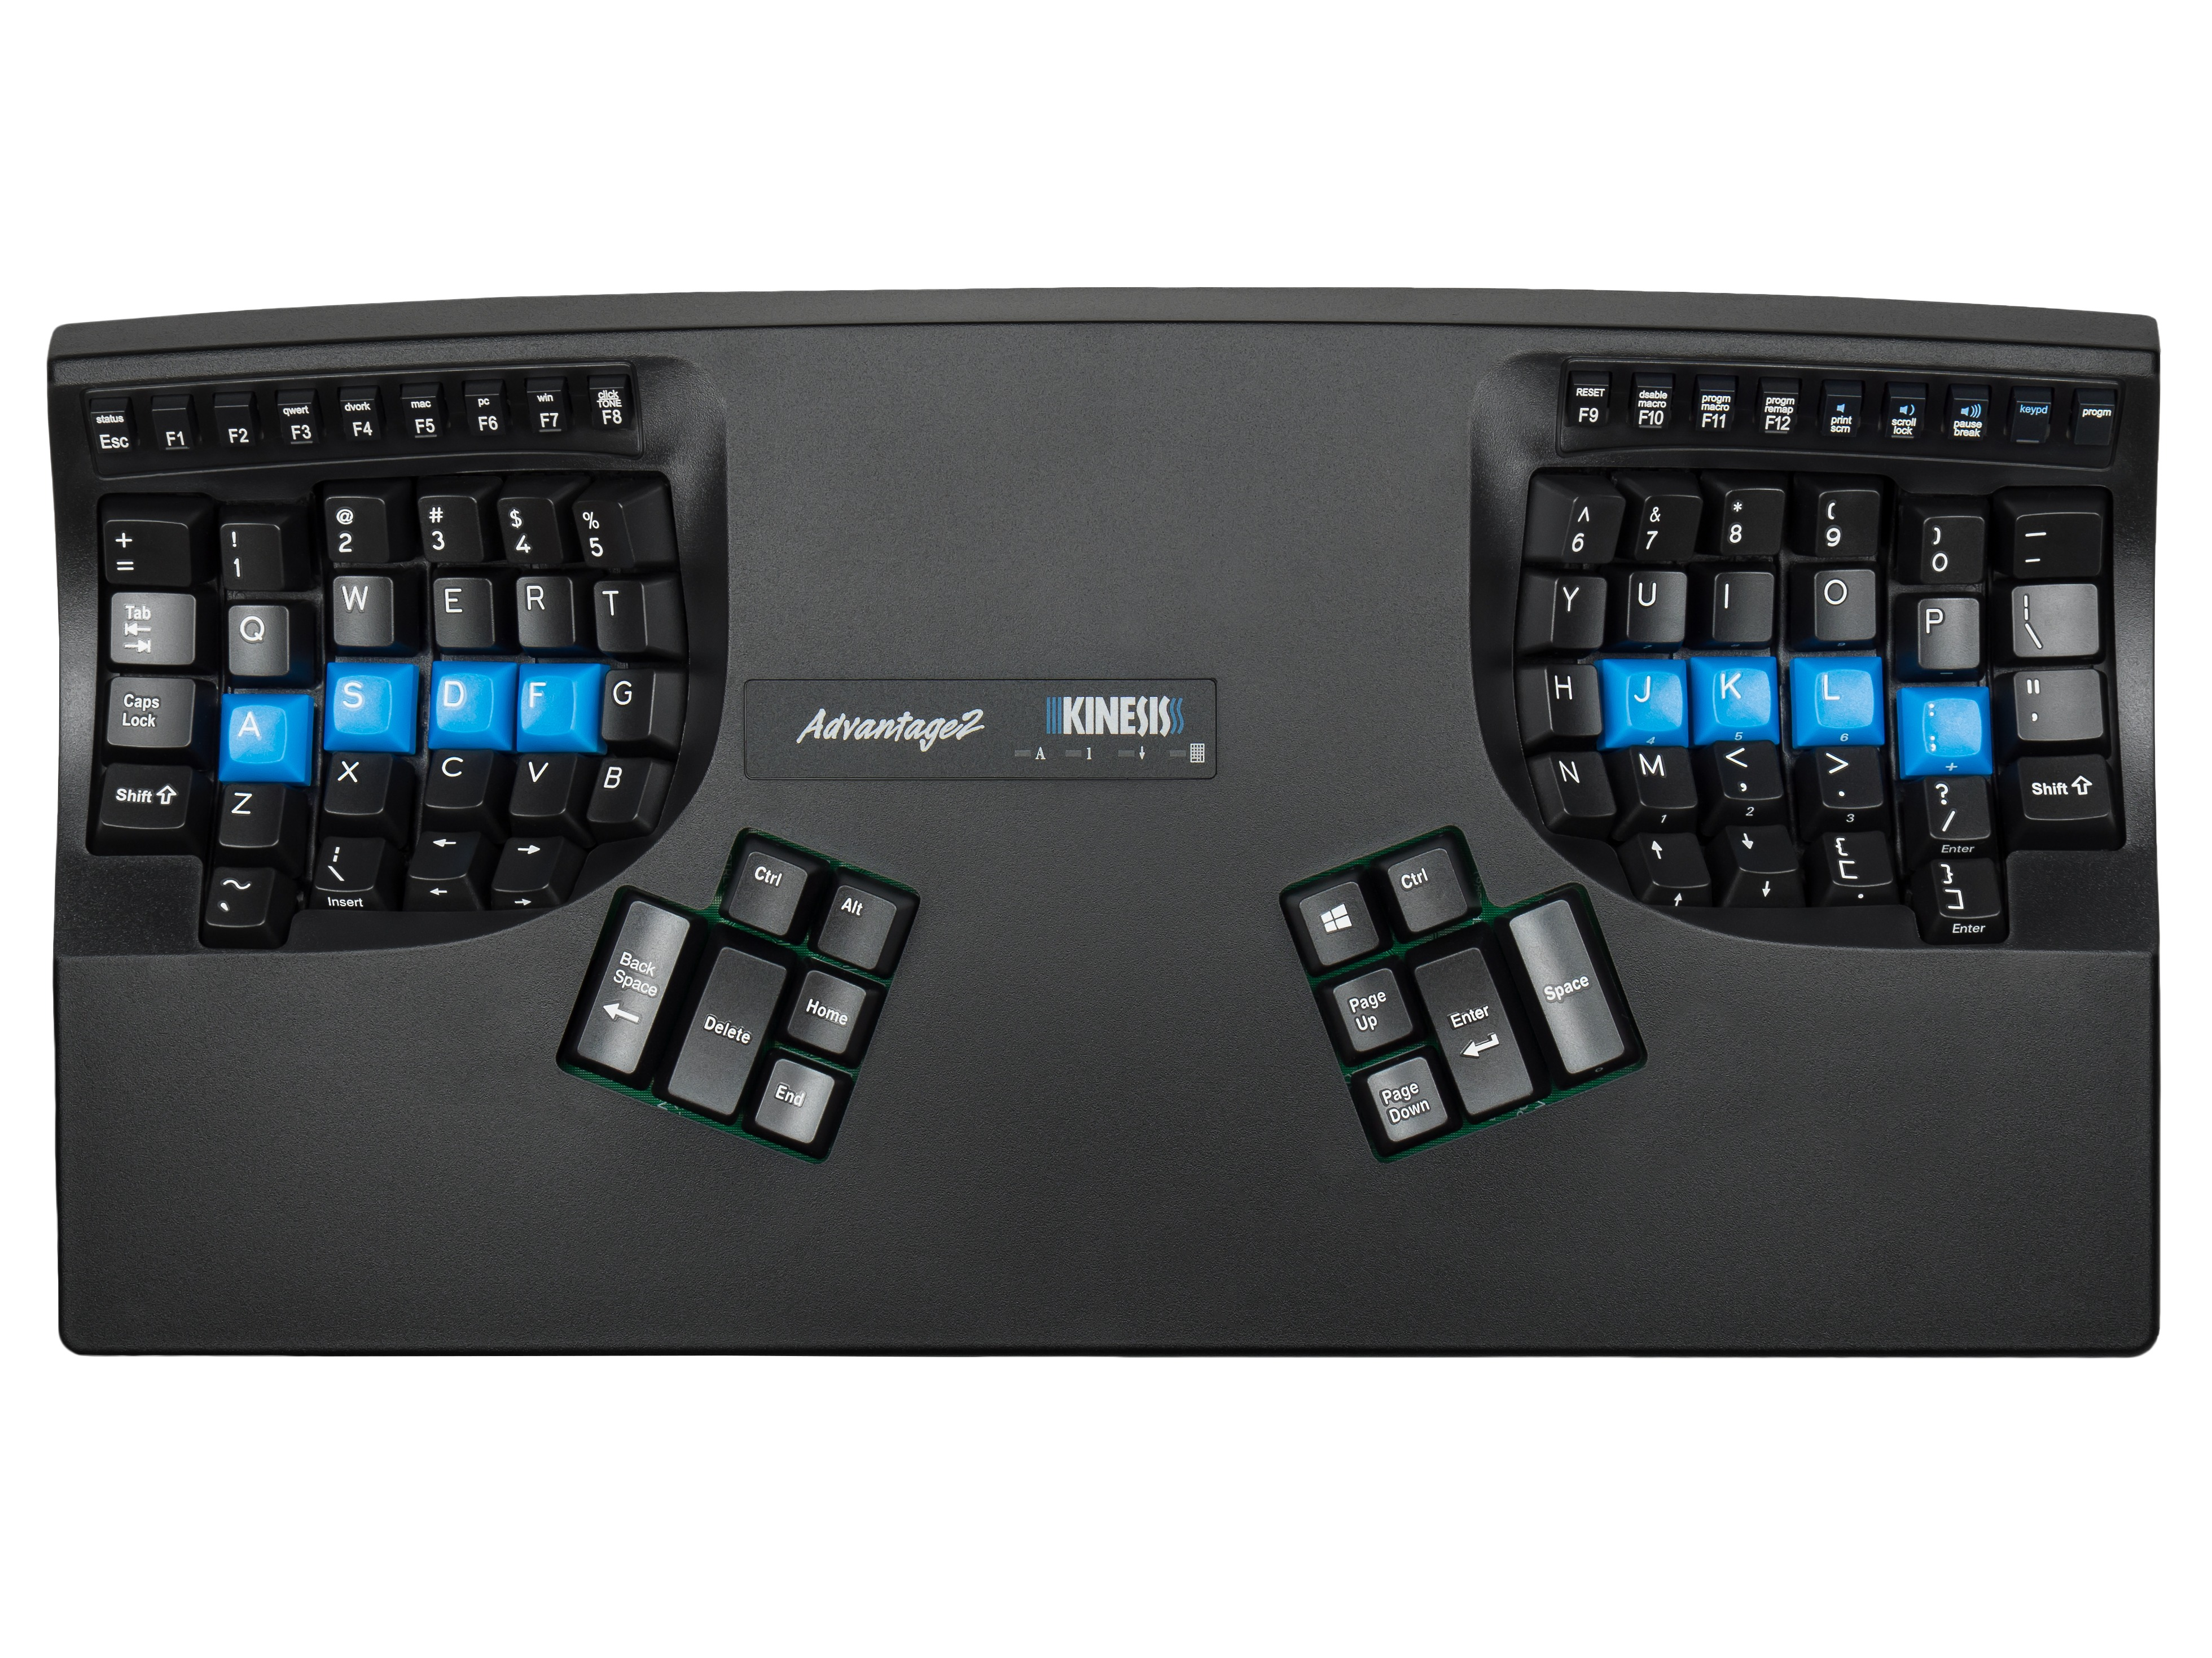 Advantage2 Wired Ergonomic Keyboard for Mac & PC | Kinesis